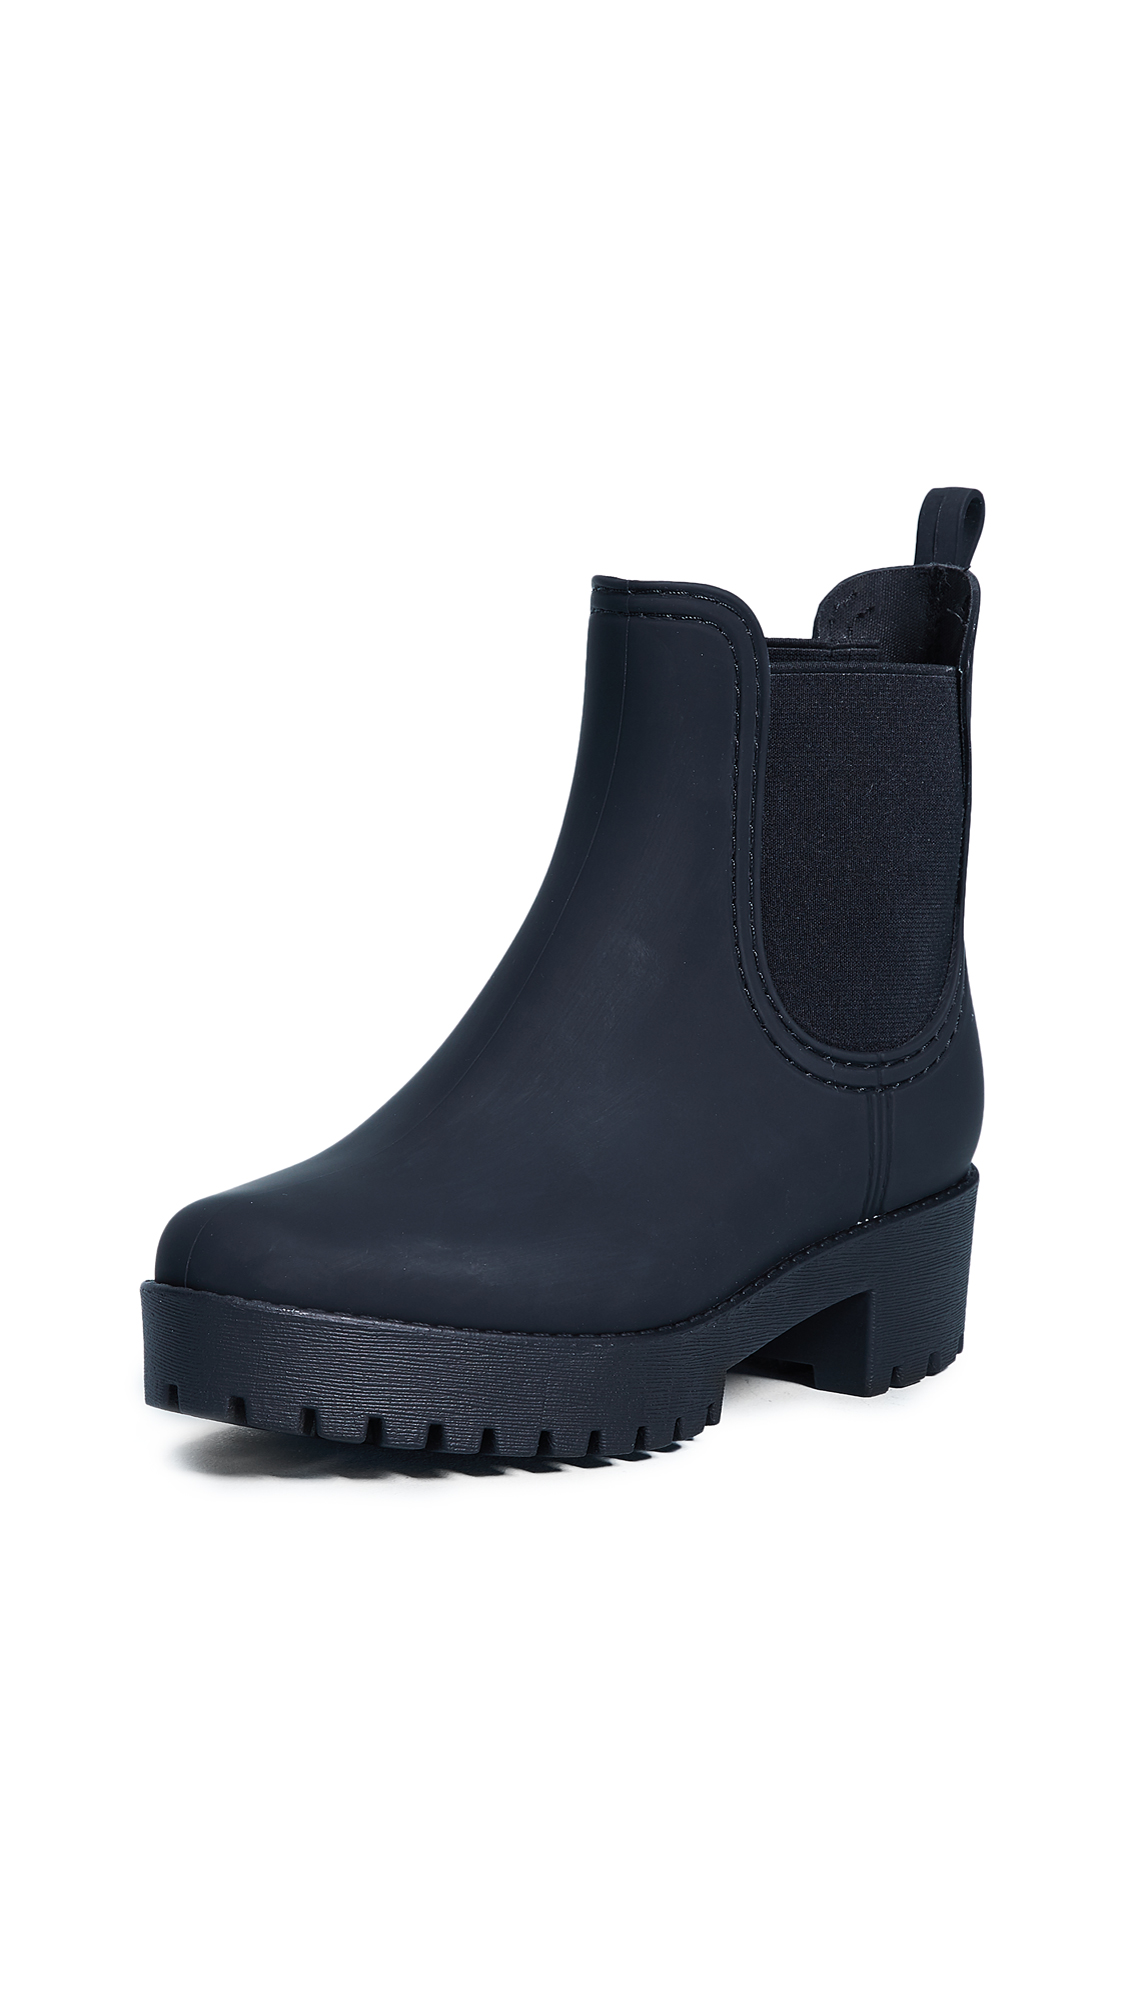 Jeffrey Campbell Cloudy Rain Booties - Black